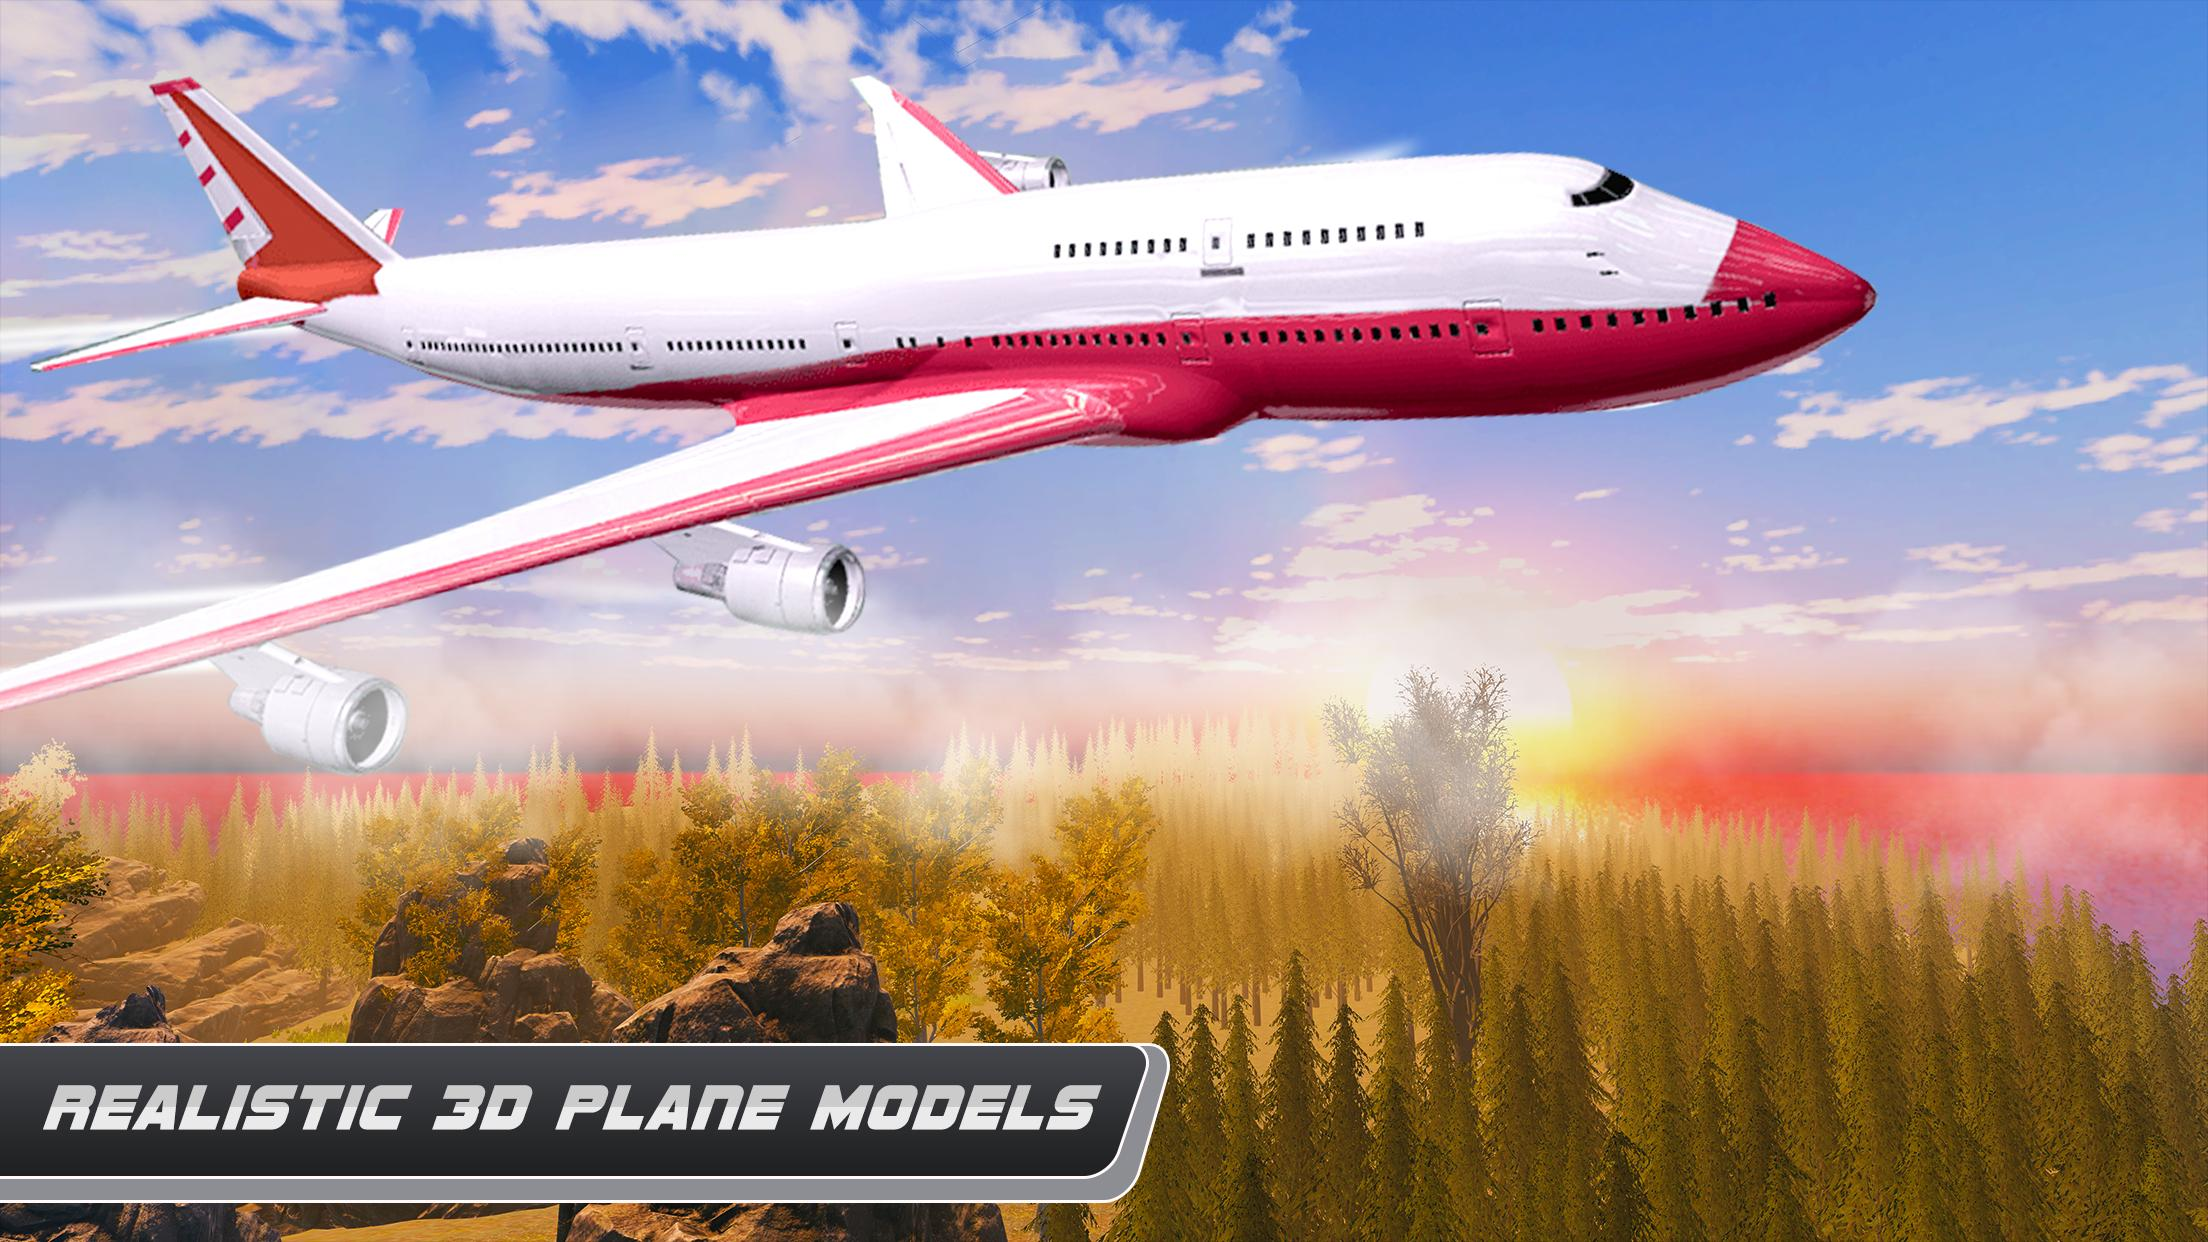 Airplane Real Flight Simulator 2020 Plane Games 5.4 Screenshot 18